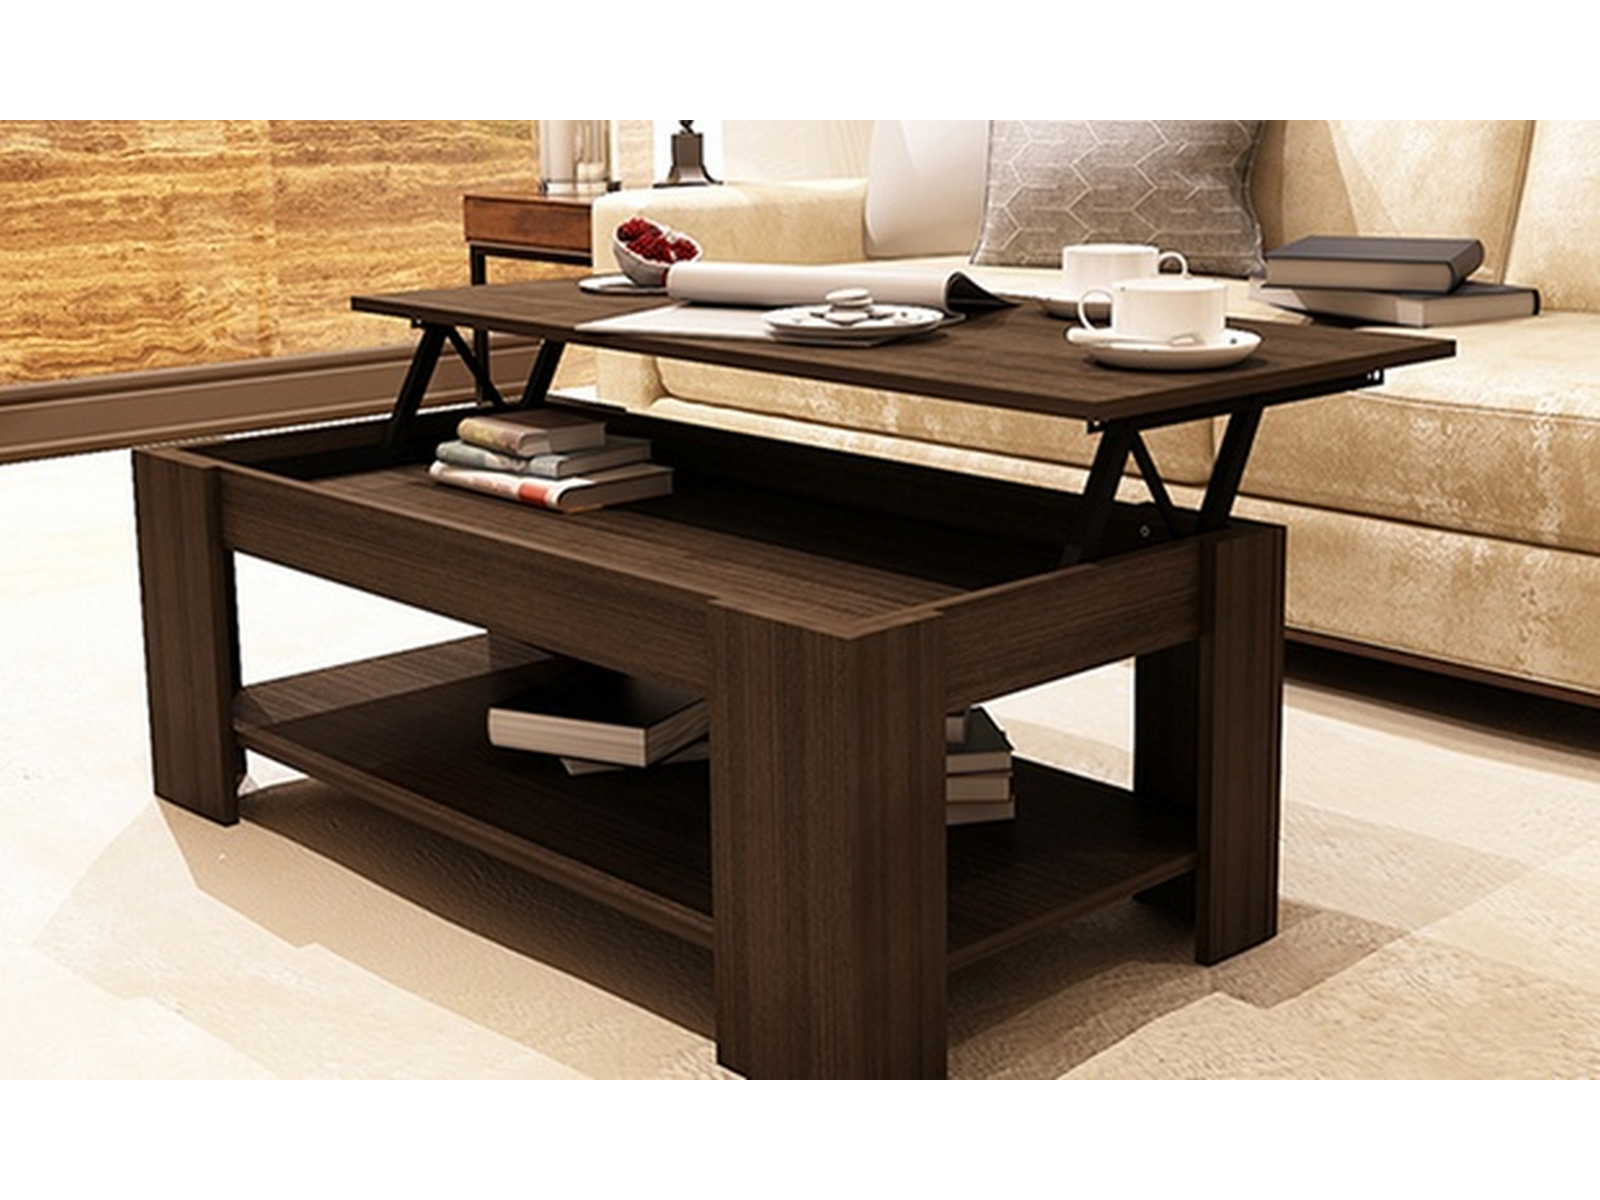 Raise Up Coffee Table New Caspian Espresso Lift Up Top Coffee Table With Storage